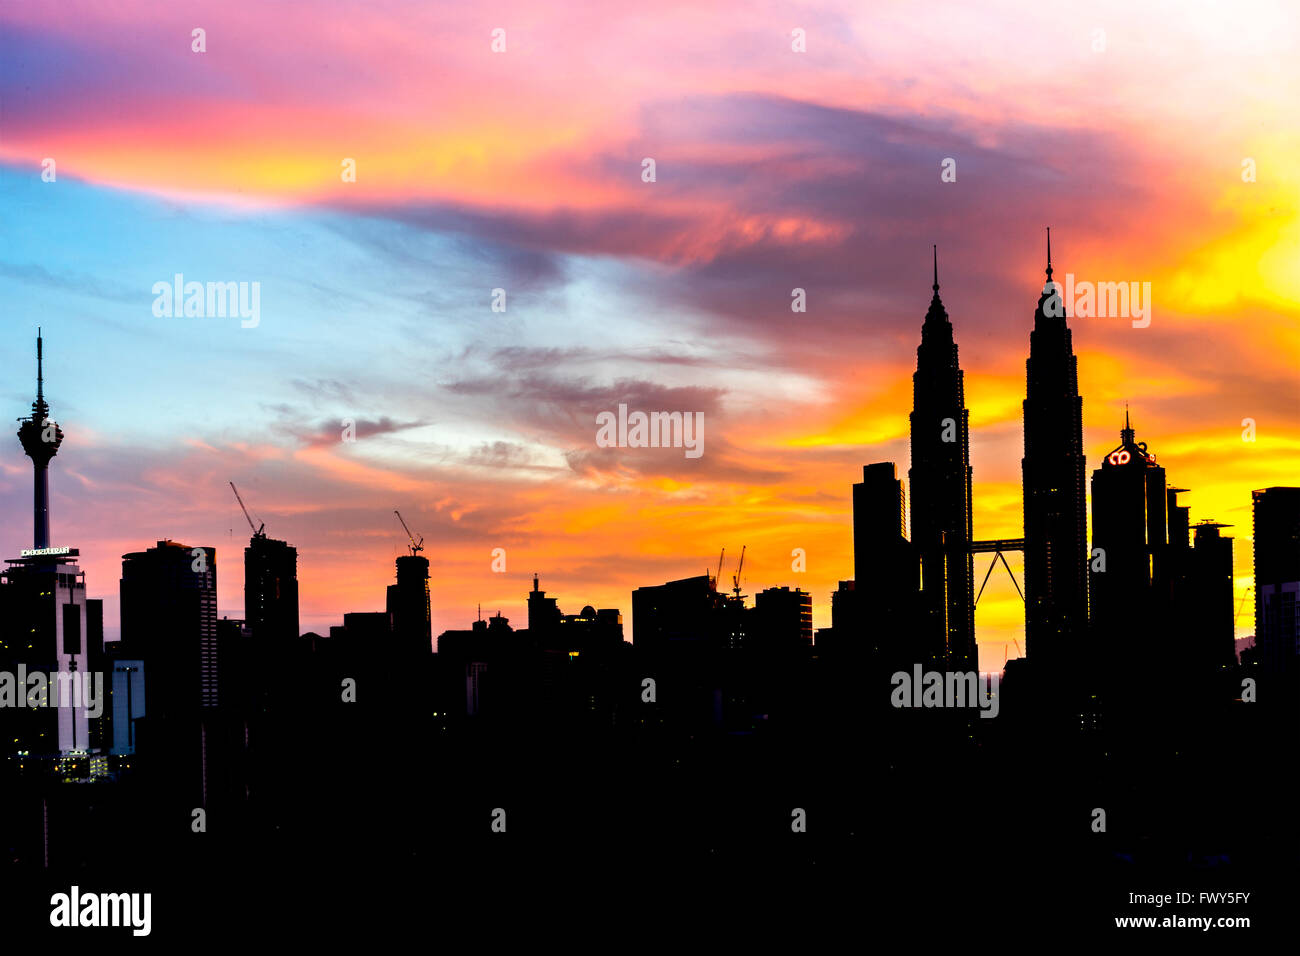 Klcc Roof Stock Photos Klcc Roof Stock Images Alamy